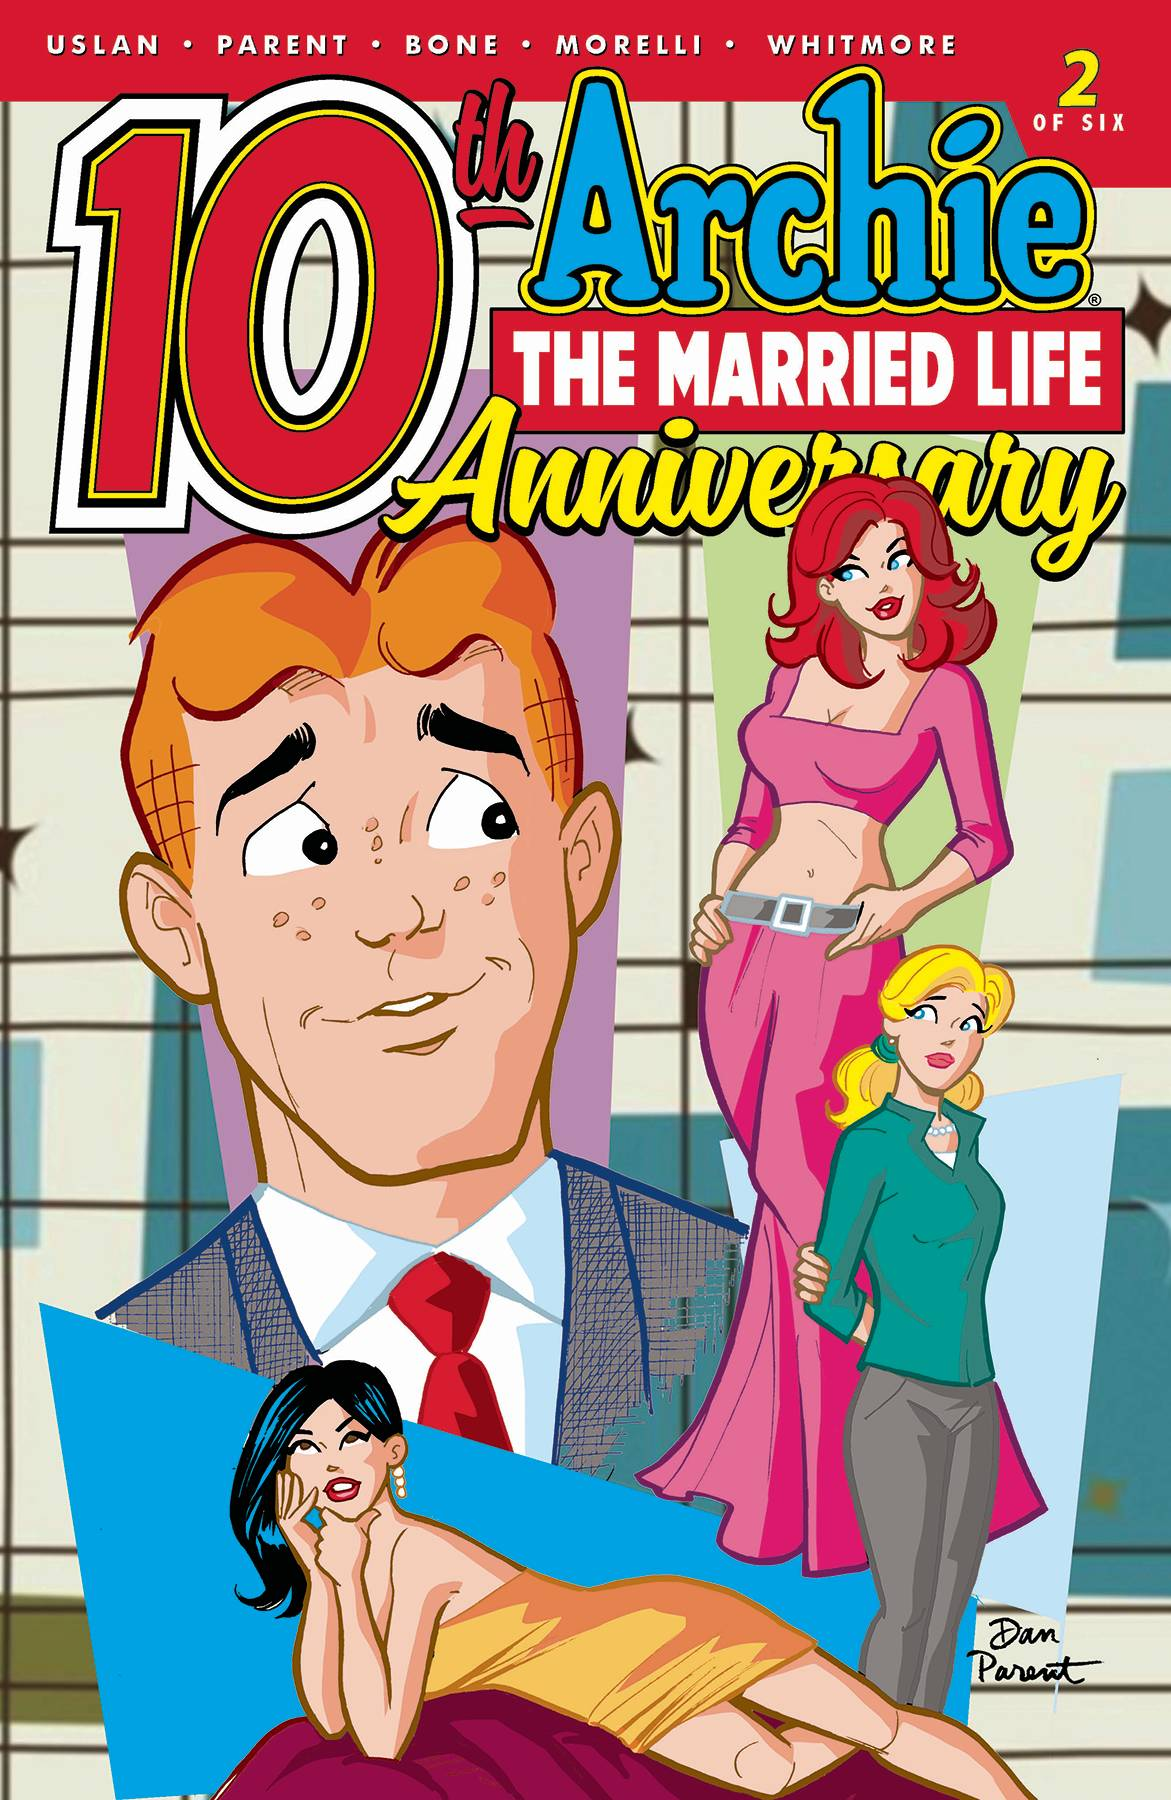 ARCHIE MARRIED LIFE 10 YEARS LATER 2 CVR A PARENT.jpg